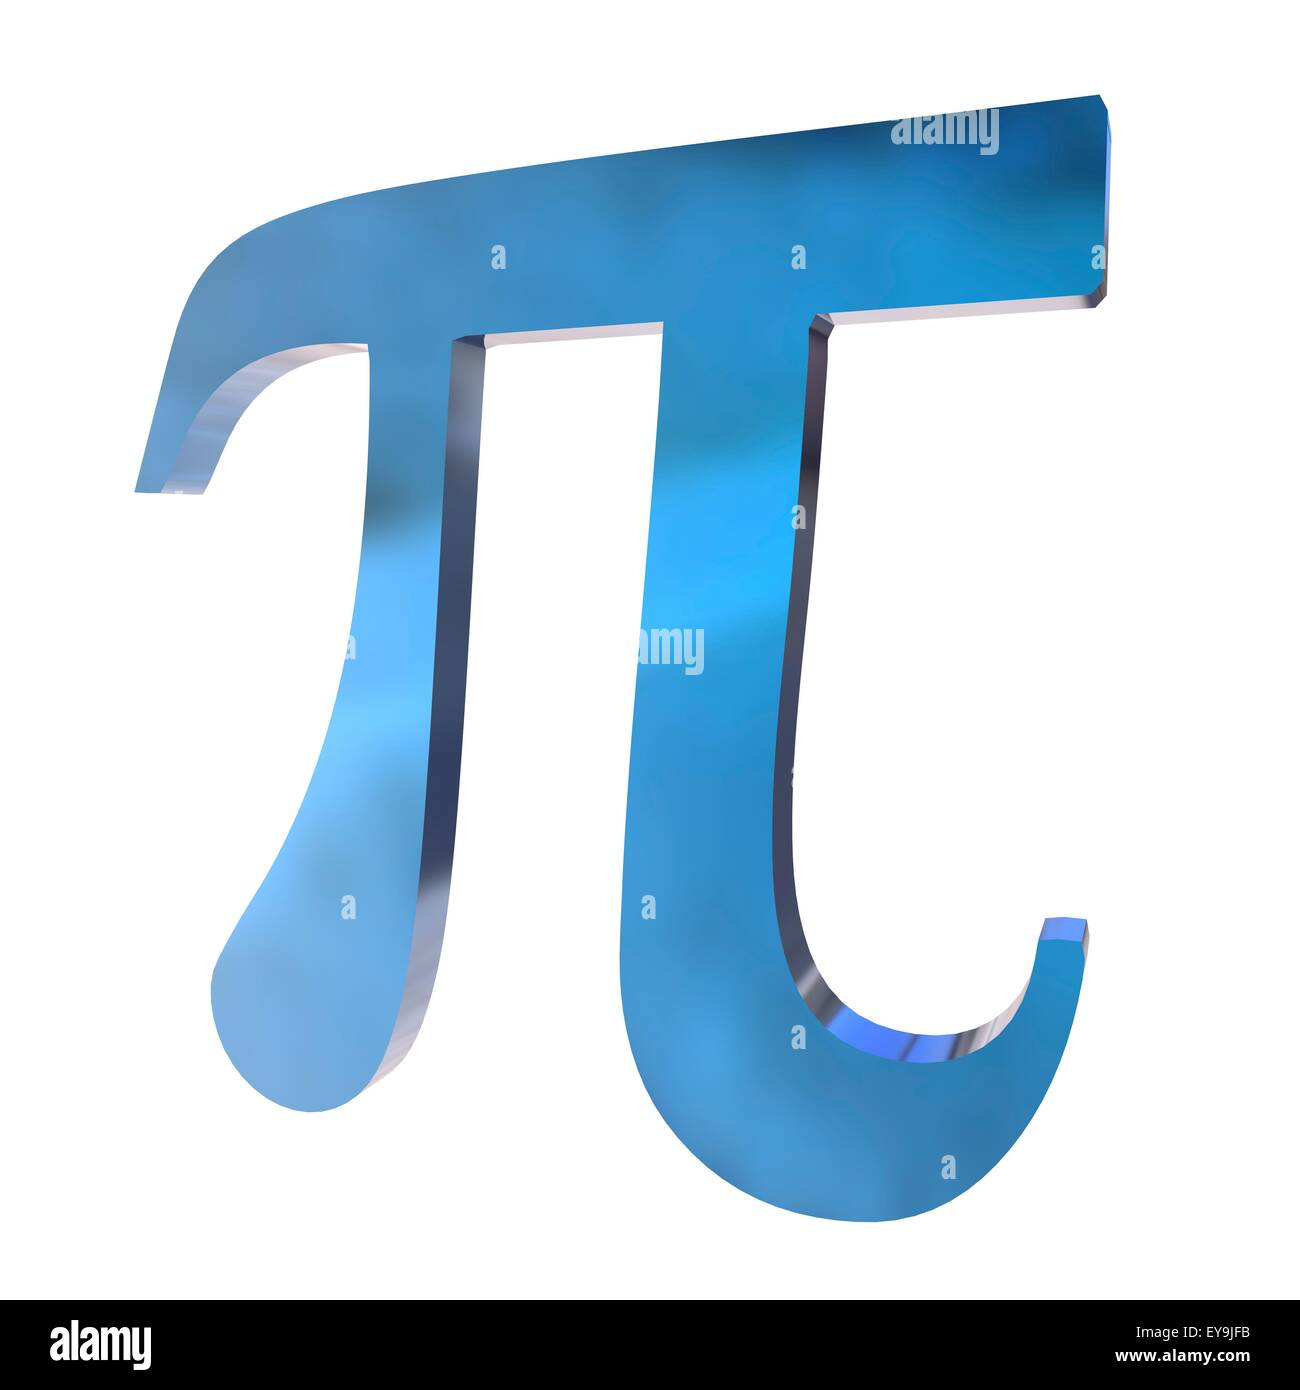 Greek letter pi stock photos greek letter pi stock images alamy pi is the sixteenth letter of the greek alphabet and the symbol used in mathematics to biocorpaavc